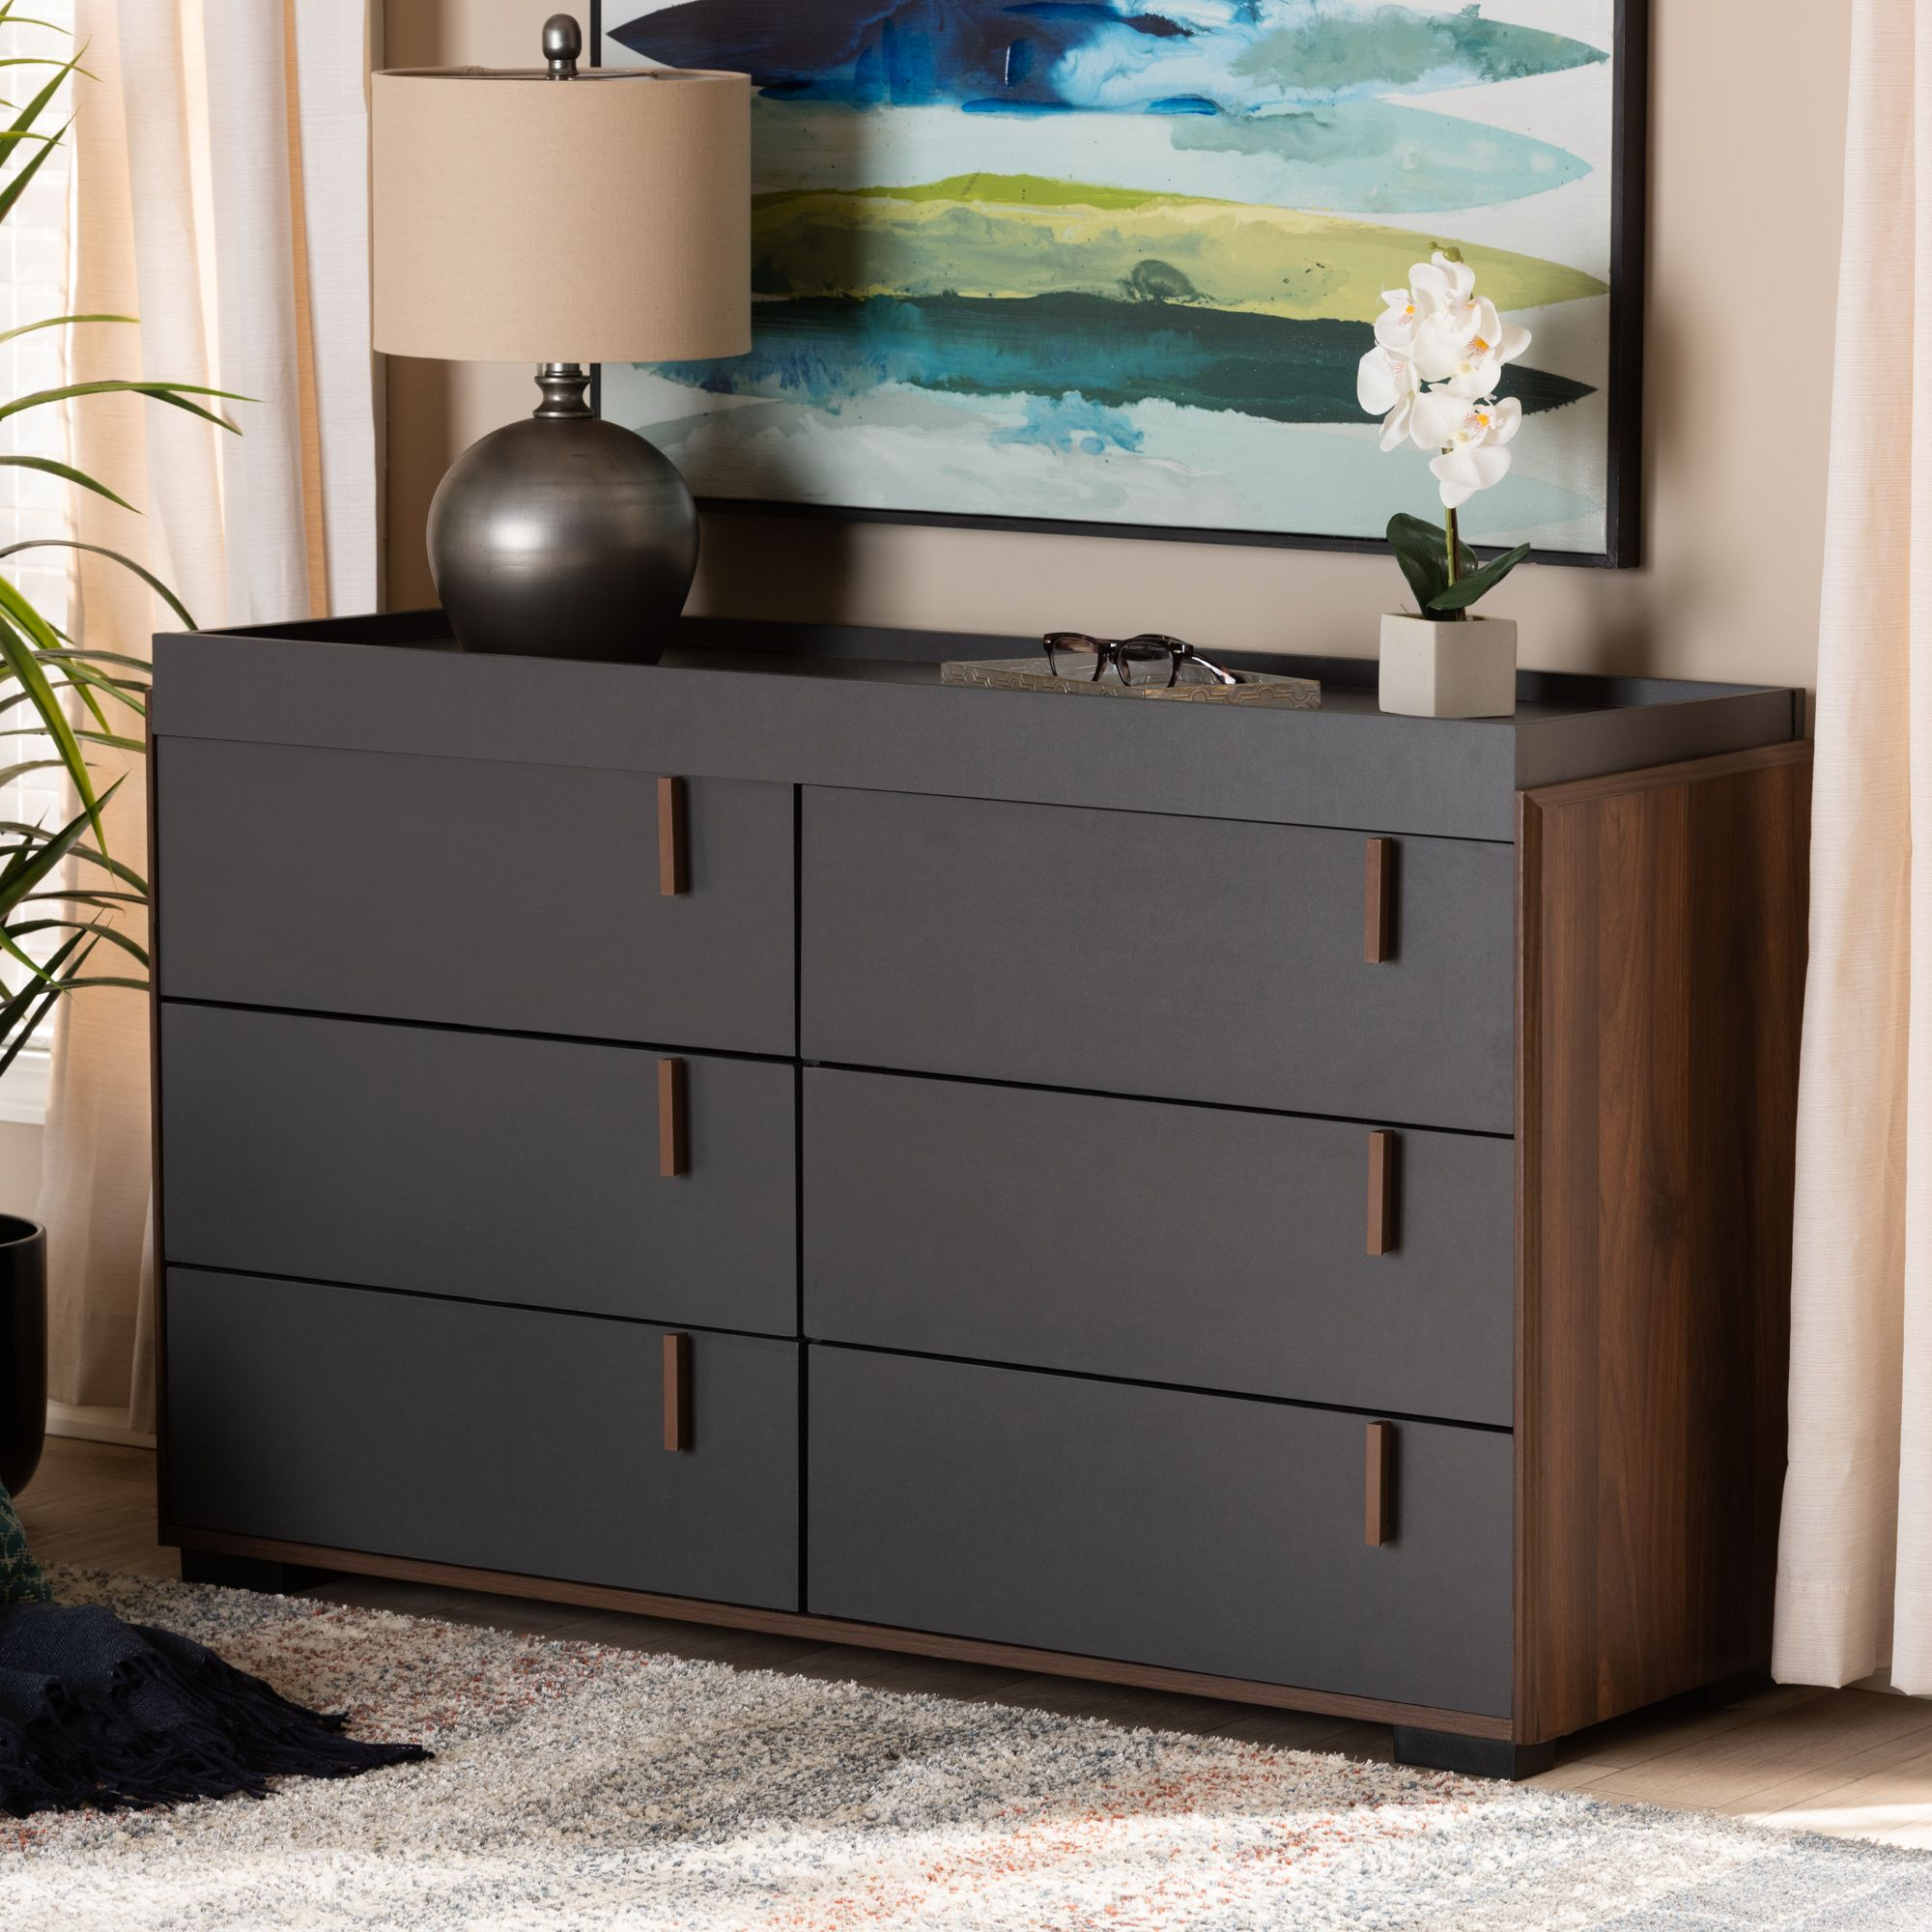 Baxton Studio Rikke Modern And Contemporary Two Tone Gray And